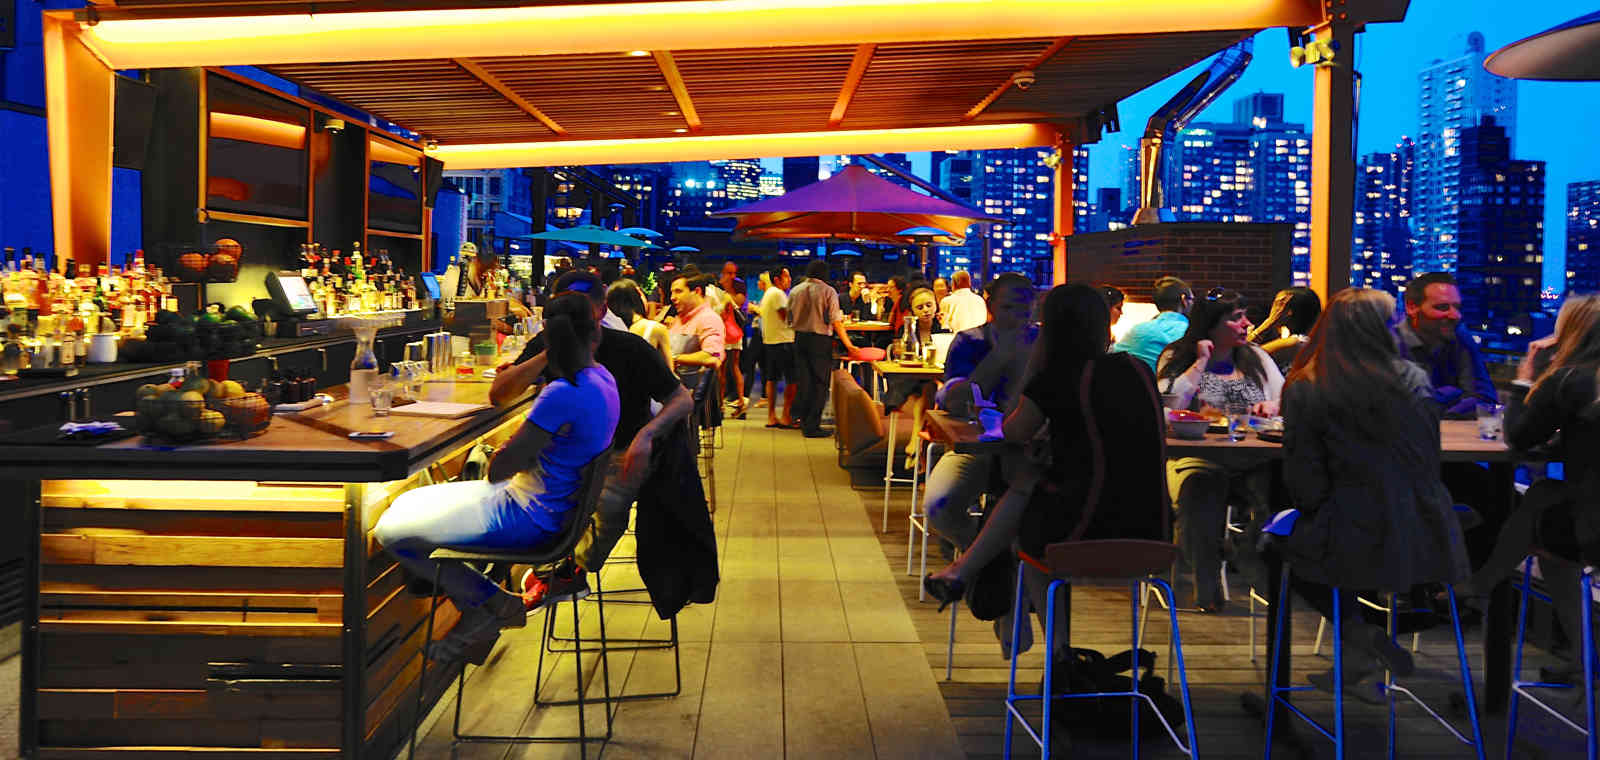 Park South_Rooftop_Guests Sittings at Tables in the Evening 1